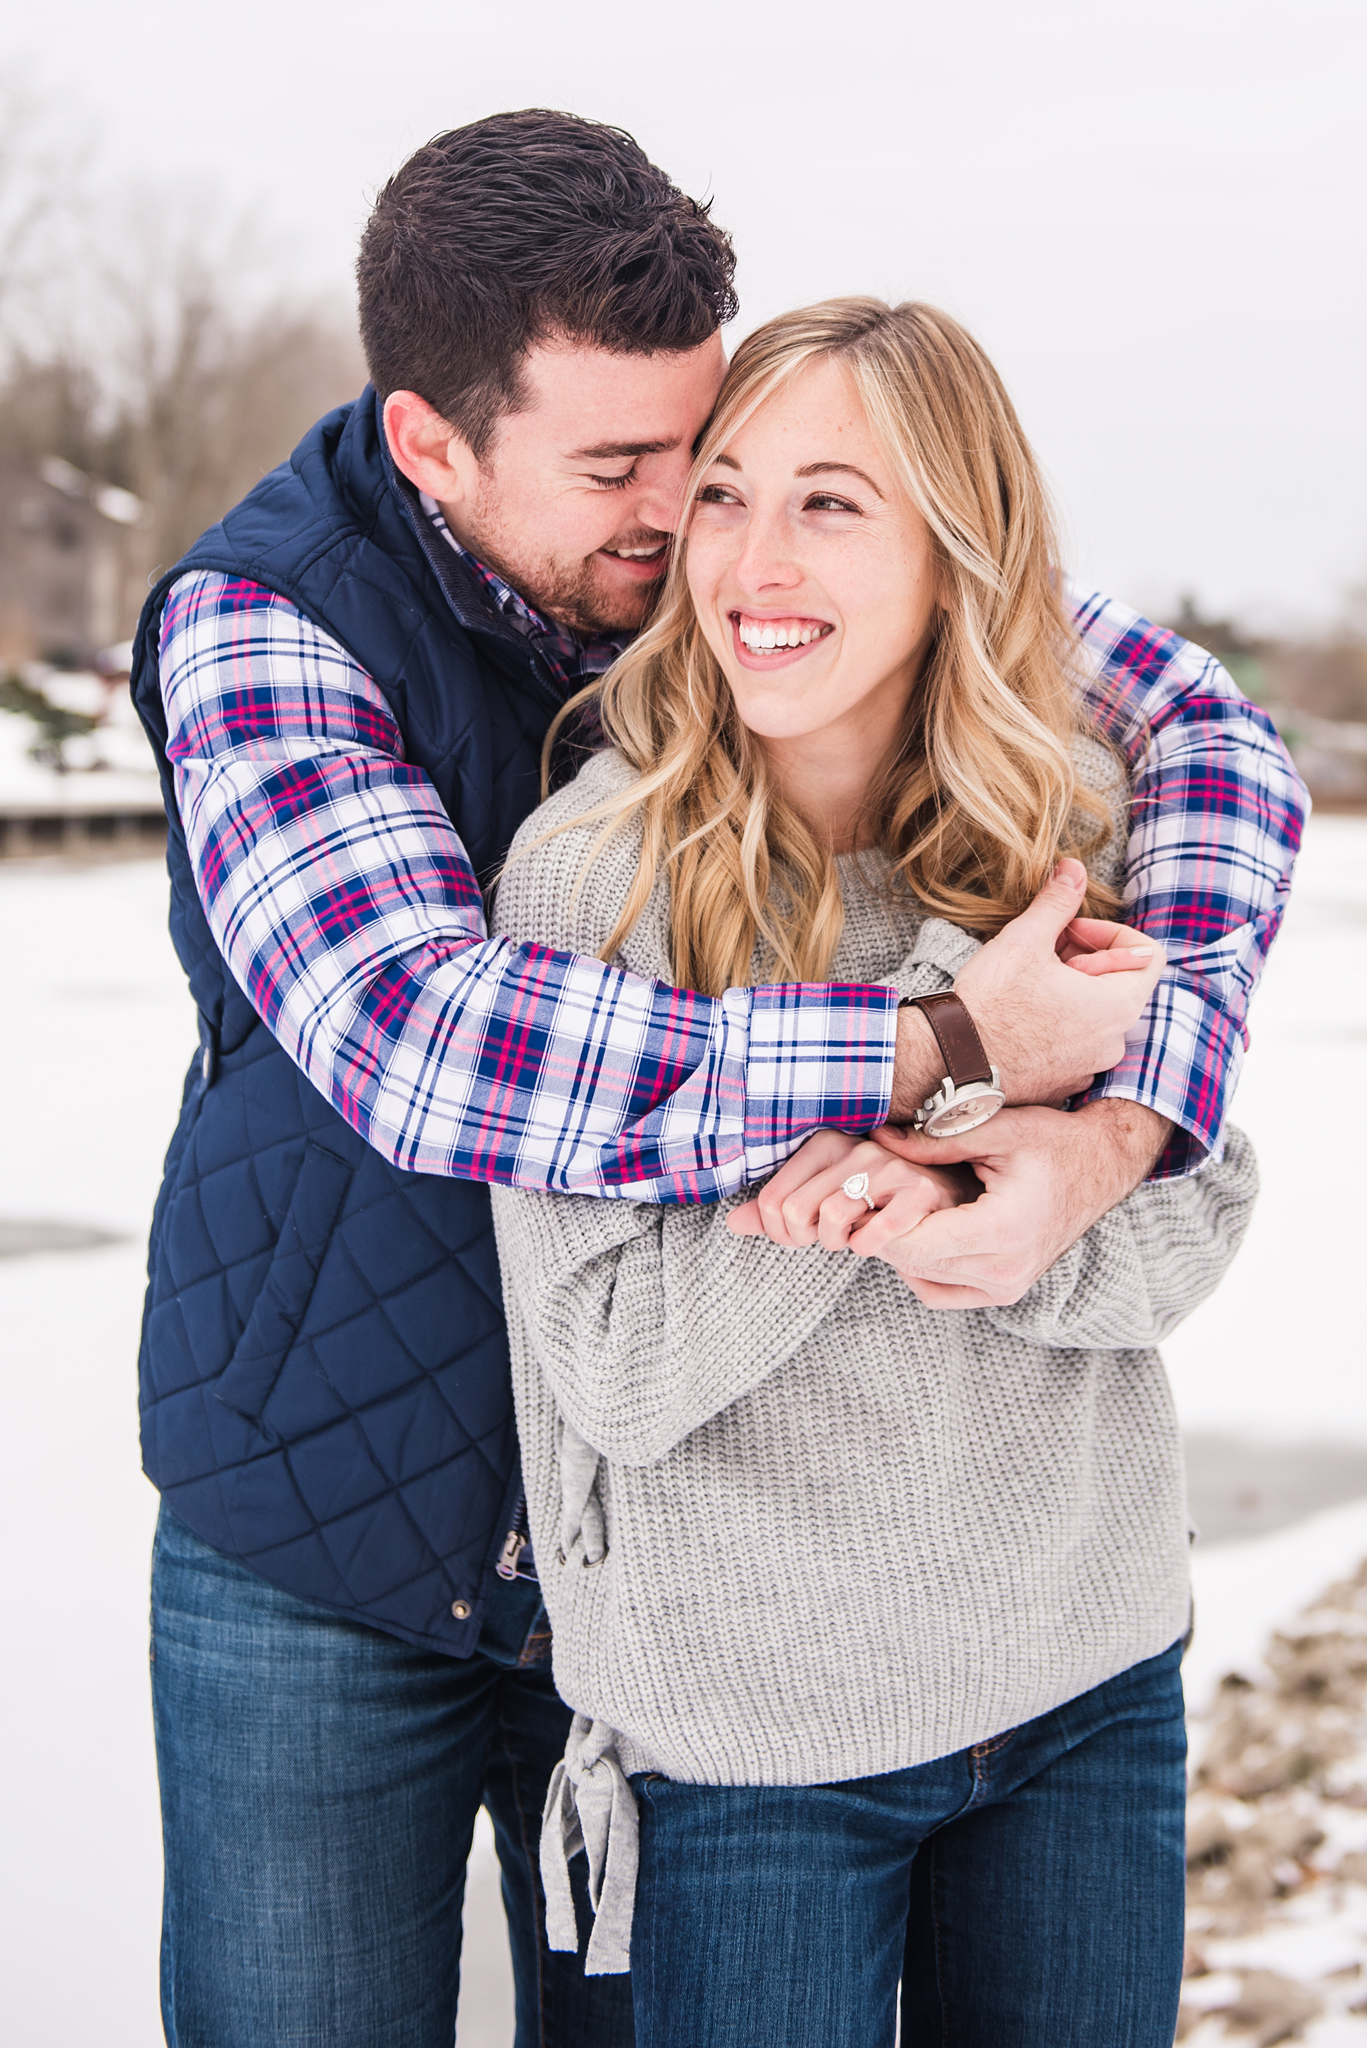 Schoen_Place_Rochester_Engagement_Session_JILL_STUDIO_Rochester_NY_Photographer_DSC_1179.jpg